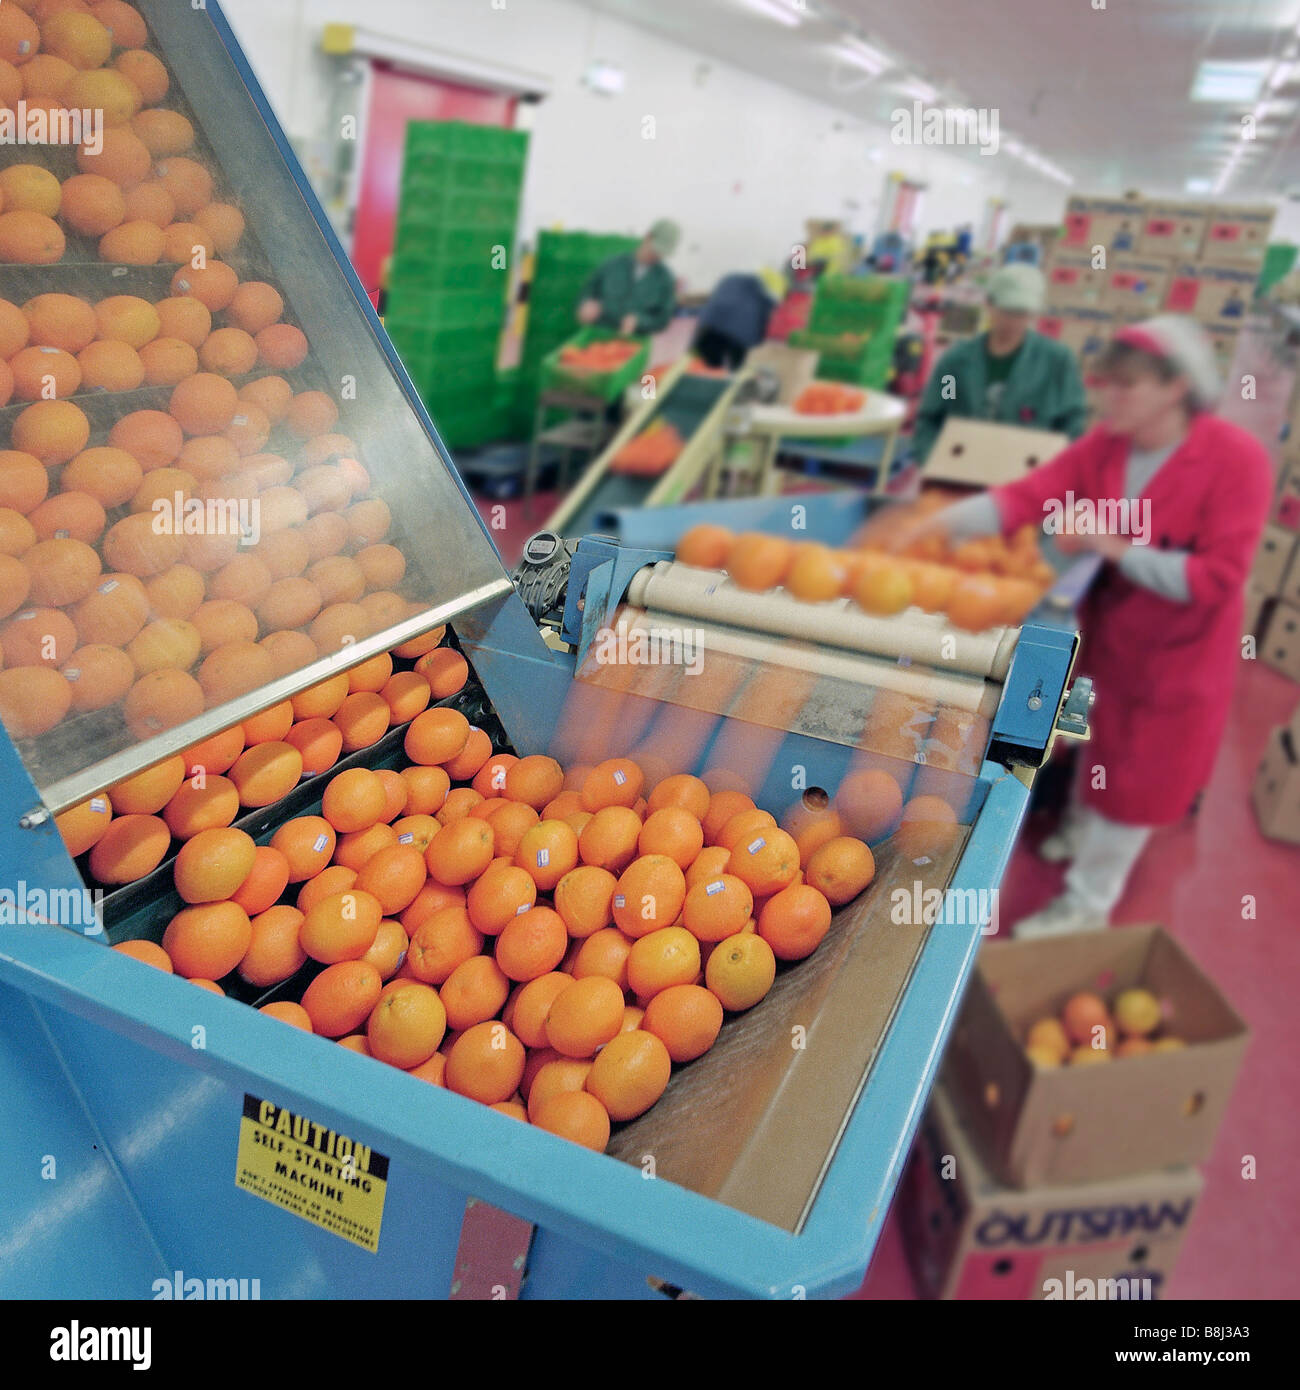 Imported fruit is passed along a production line in a factory to be packaged for retail distribution. - Stock Image